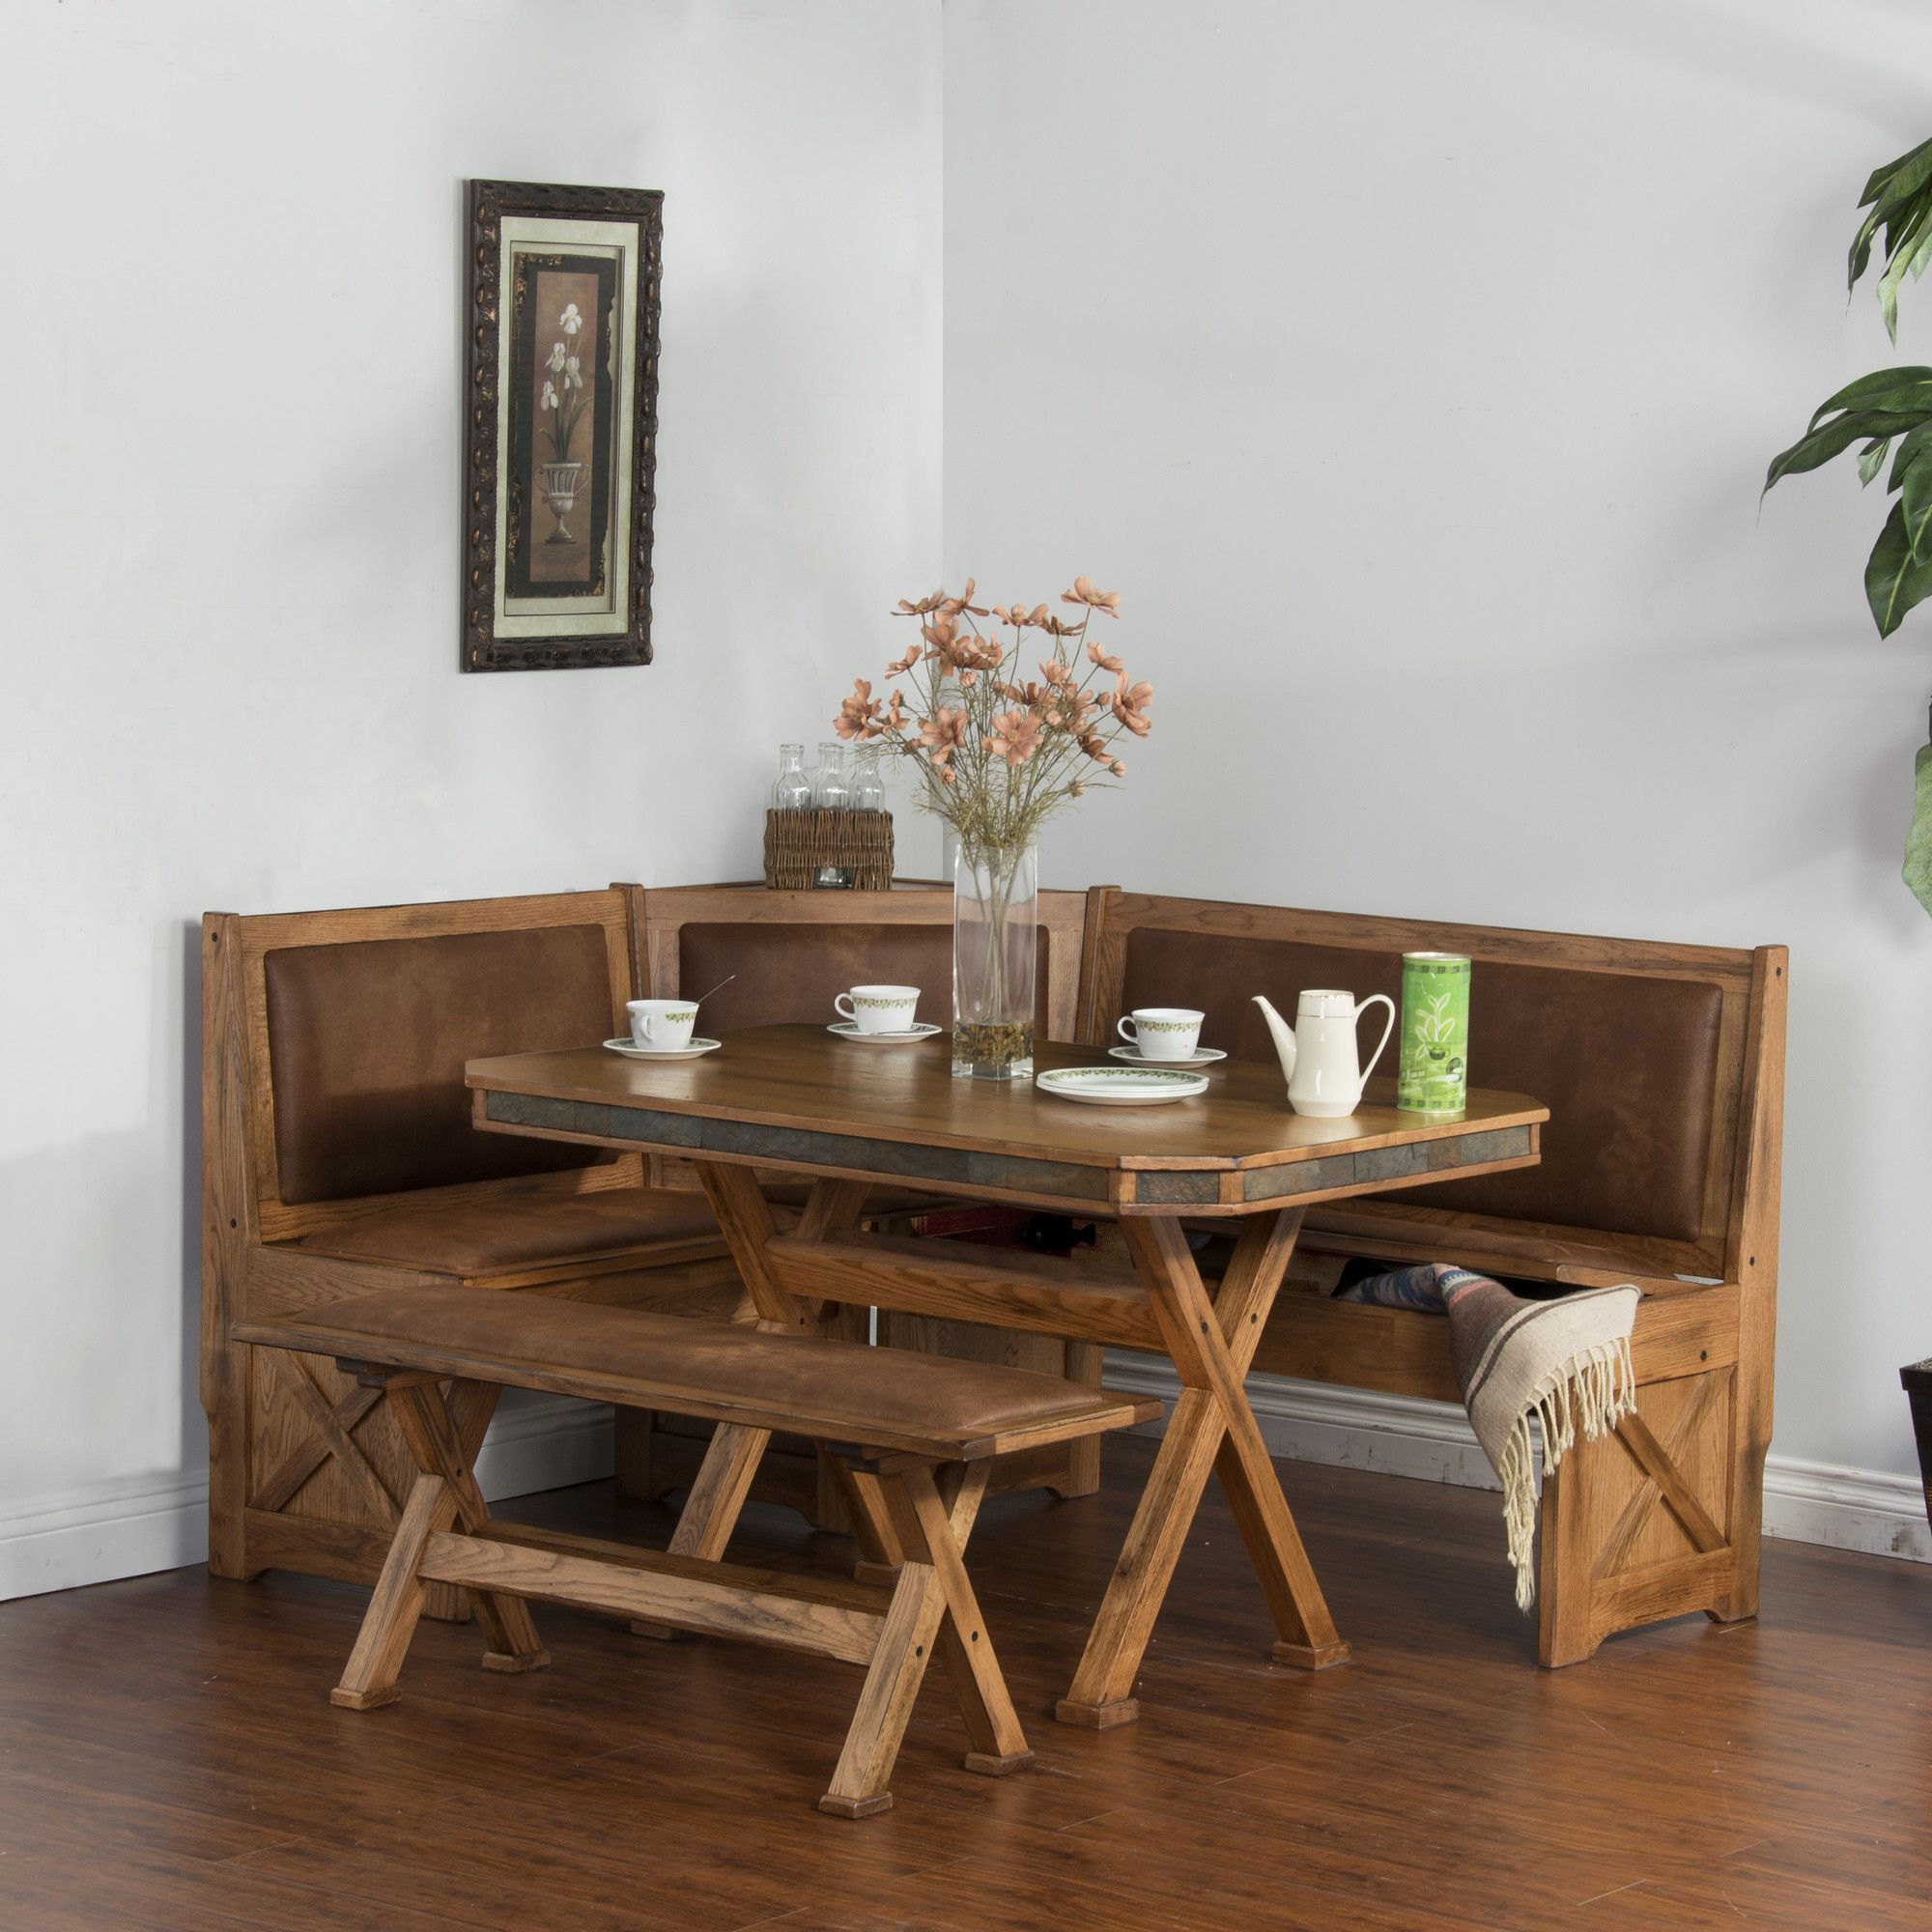 Breakfast nook set with side bench Corner